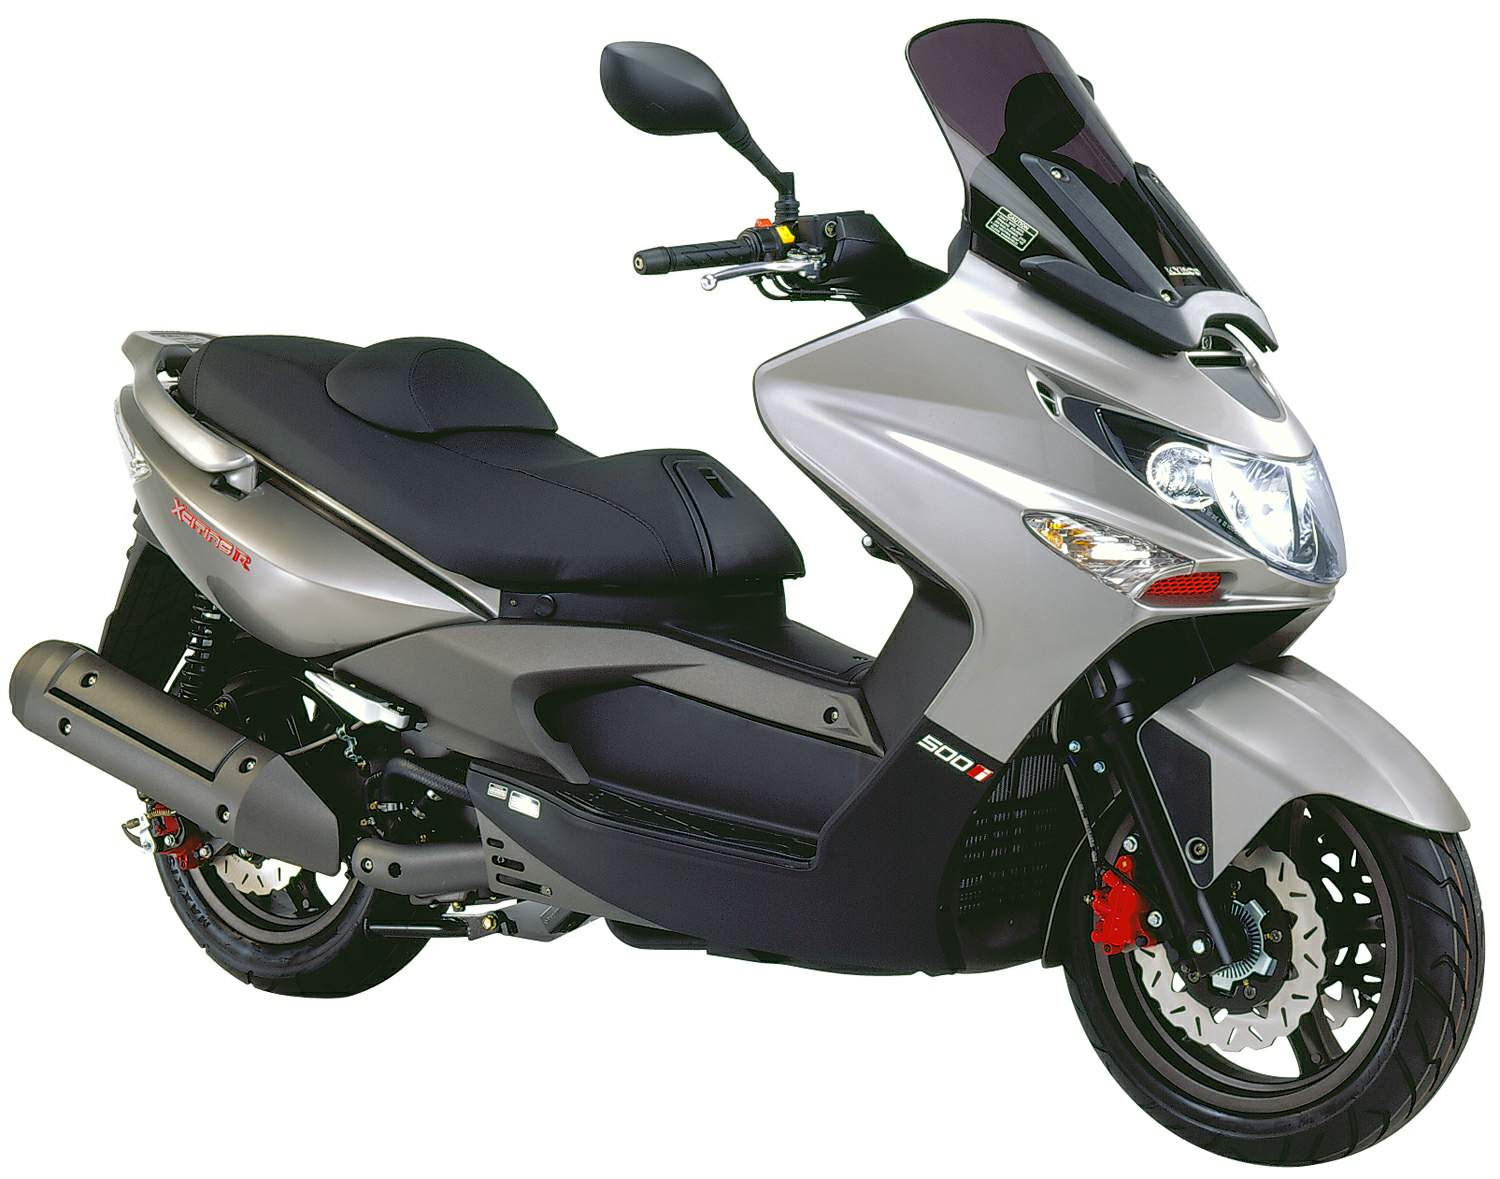 KYMCO Kymco Xciting 250Ri technical specifications